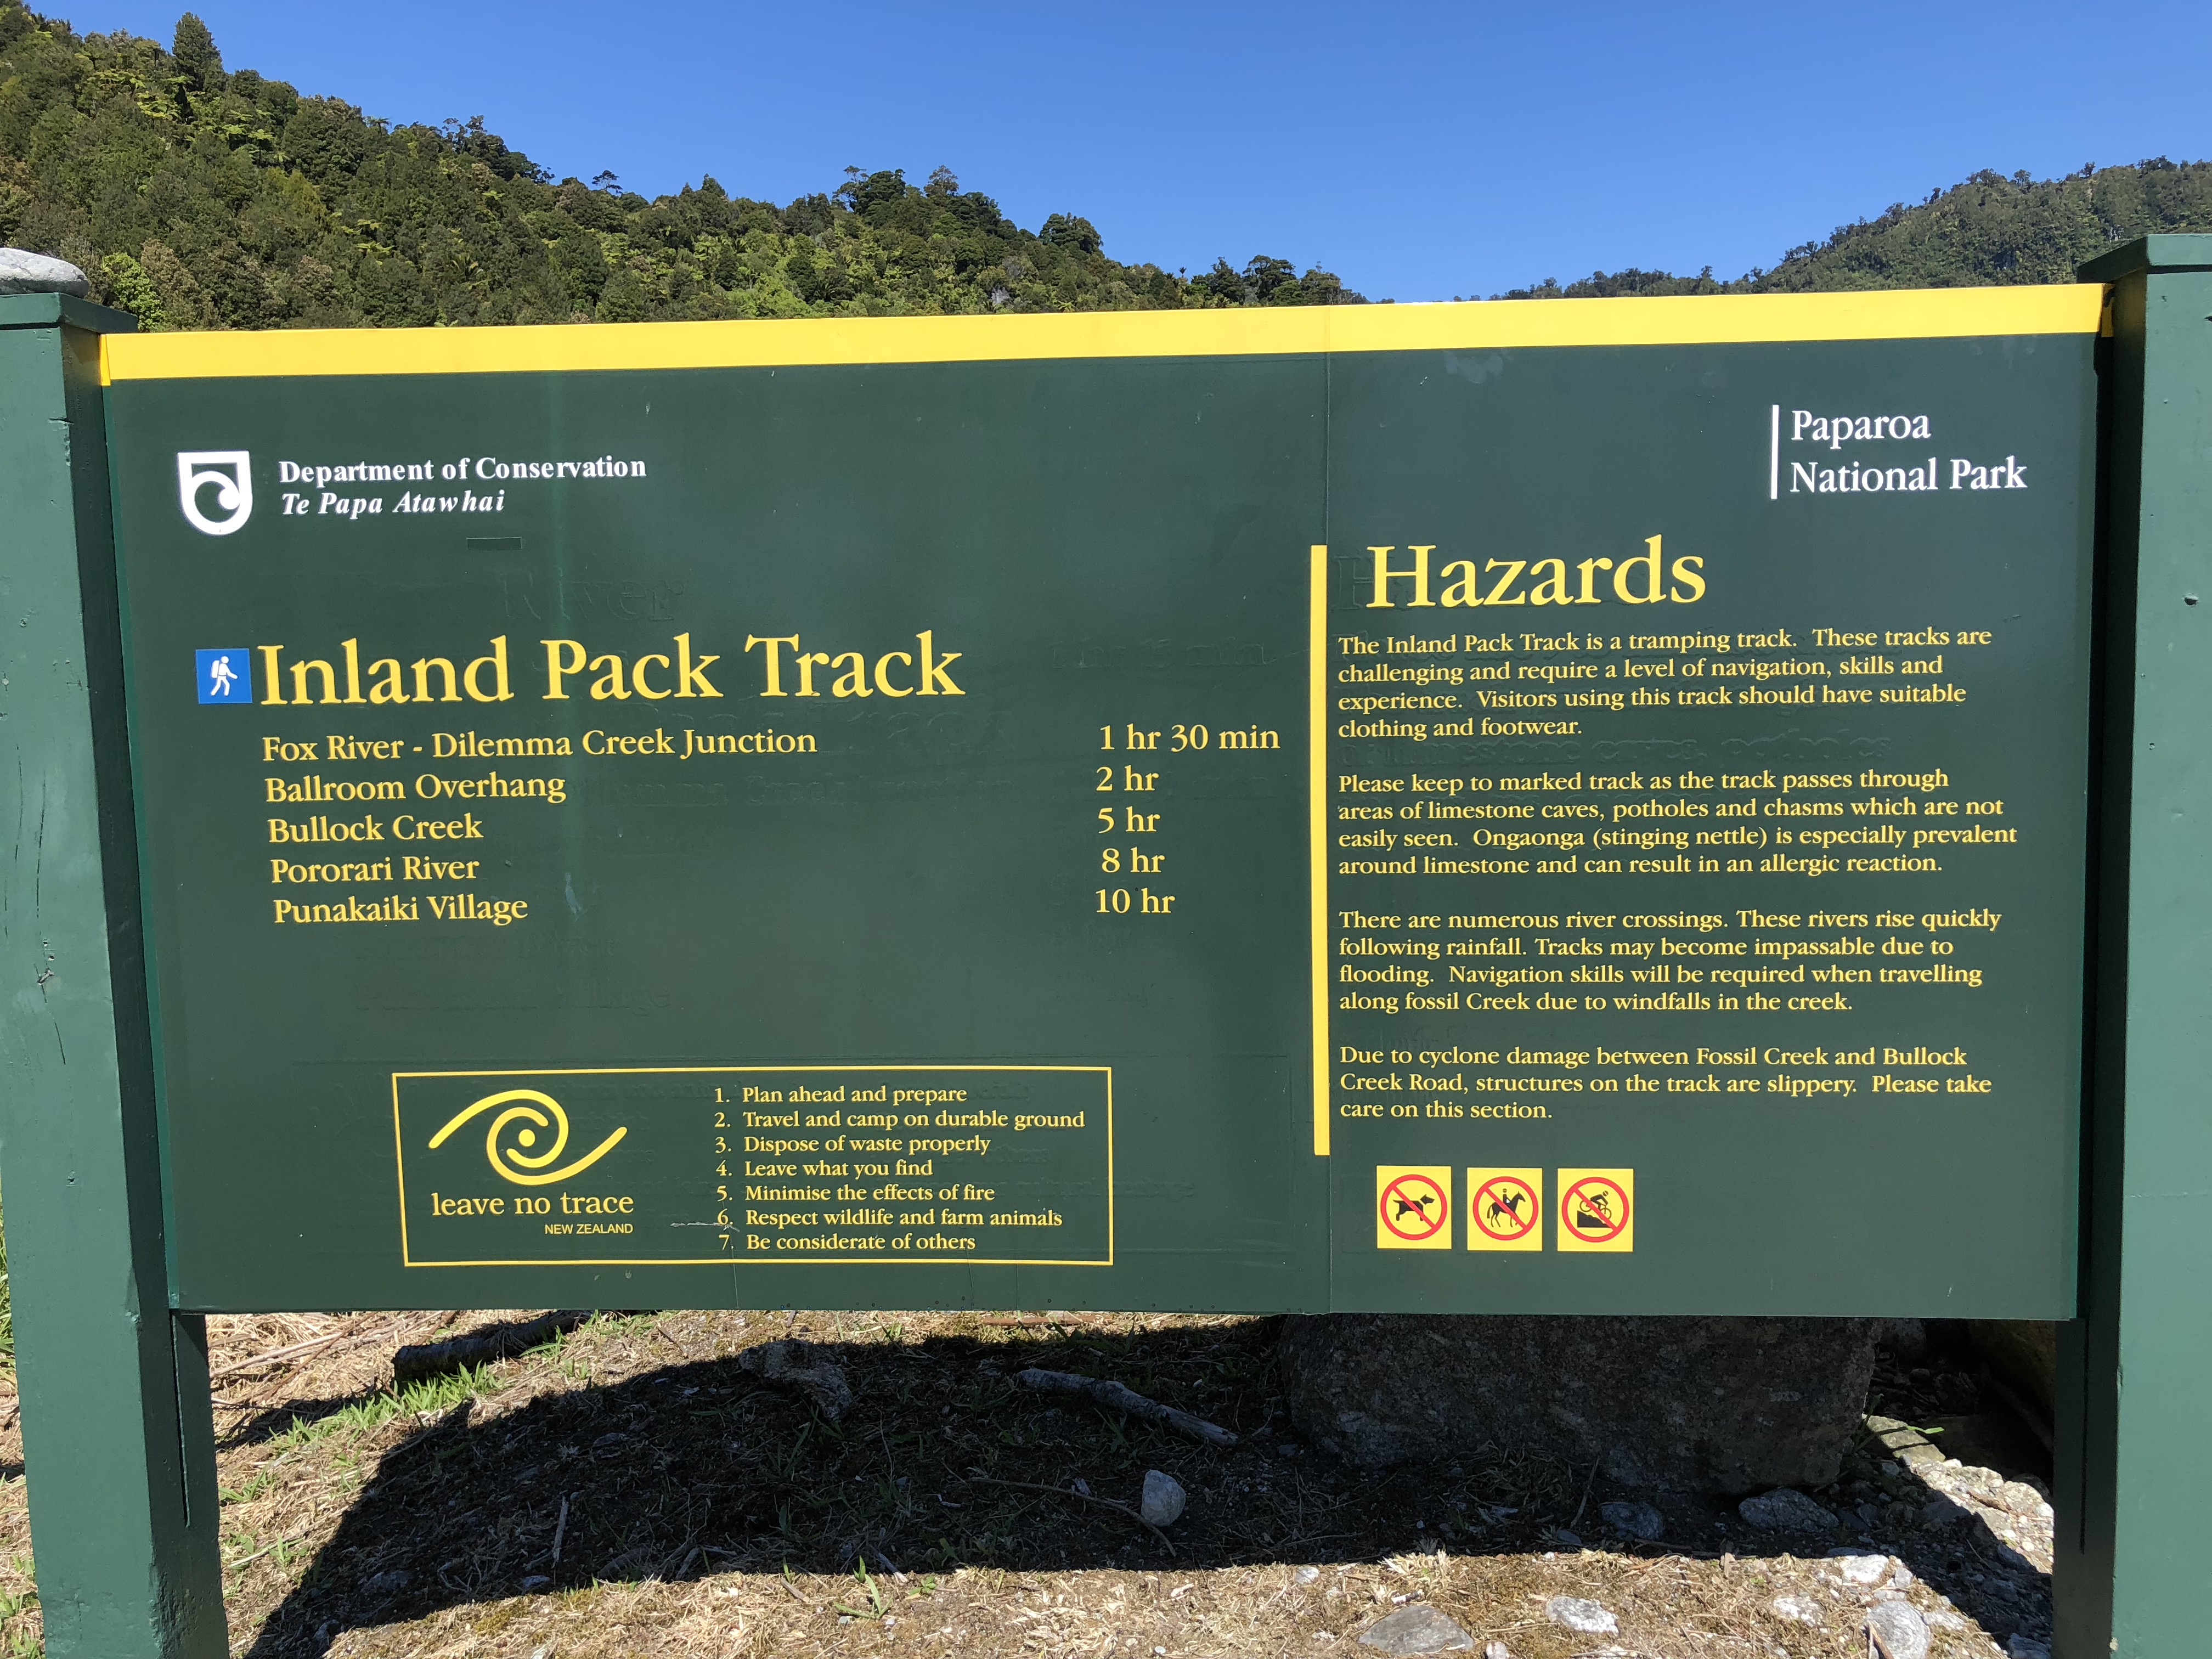 Inland Pack Track